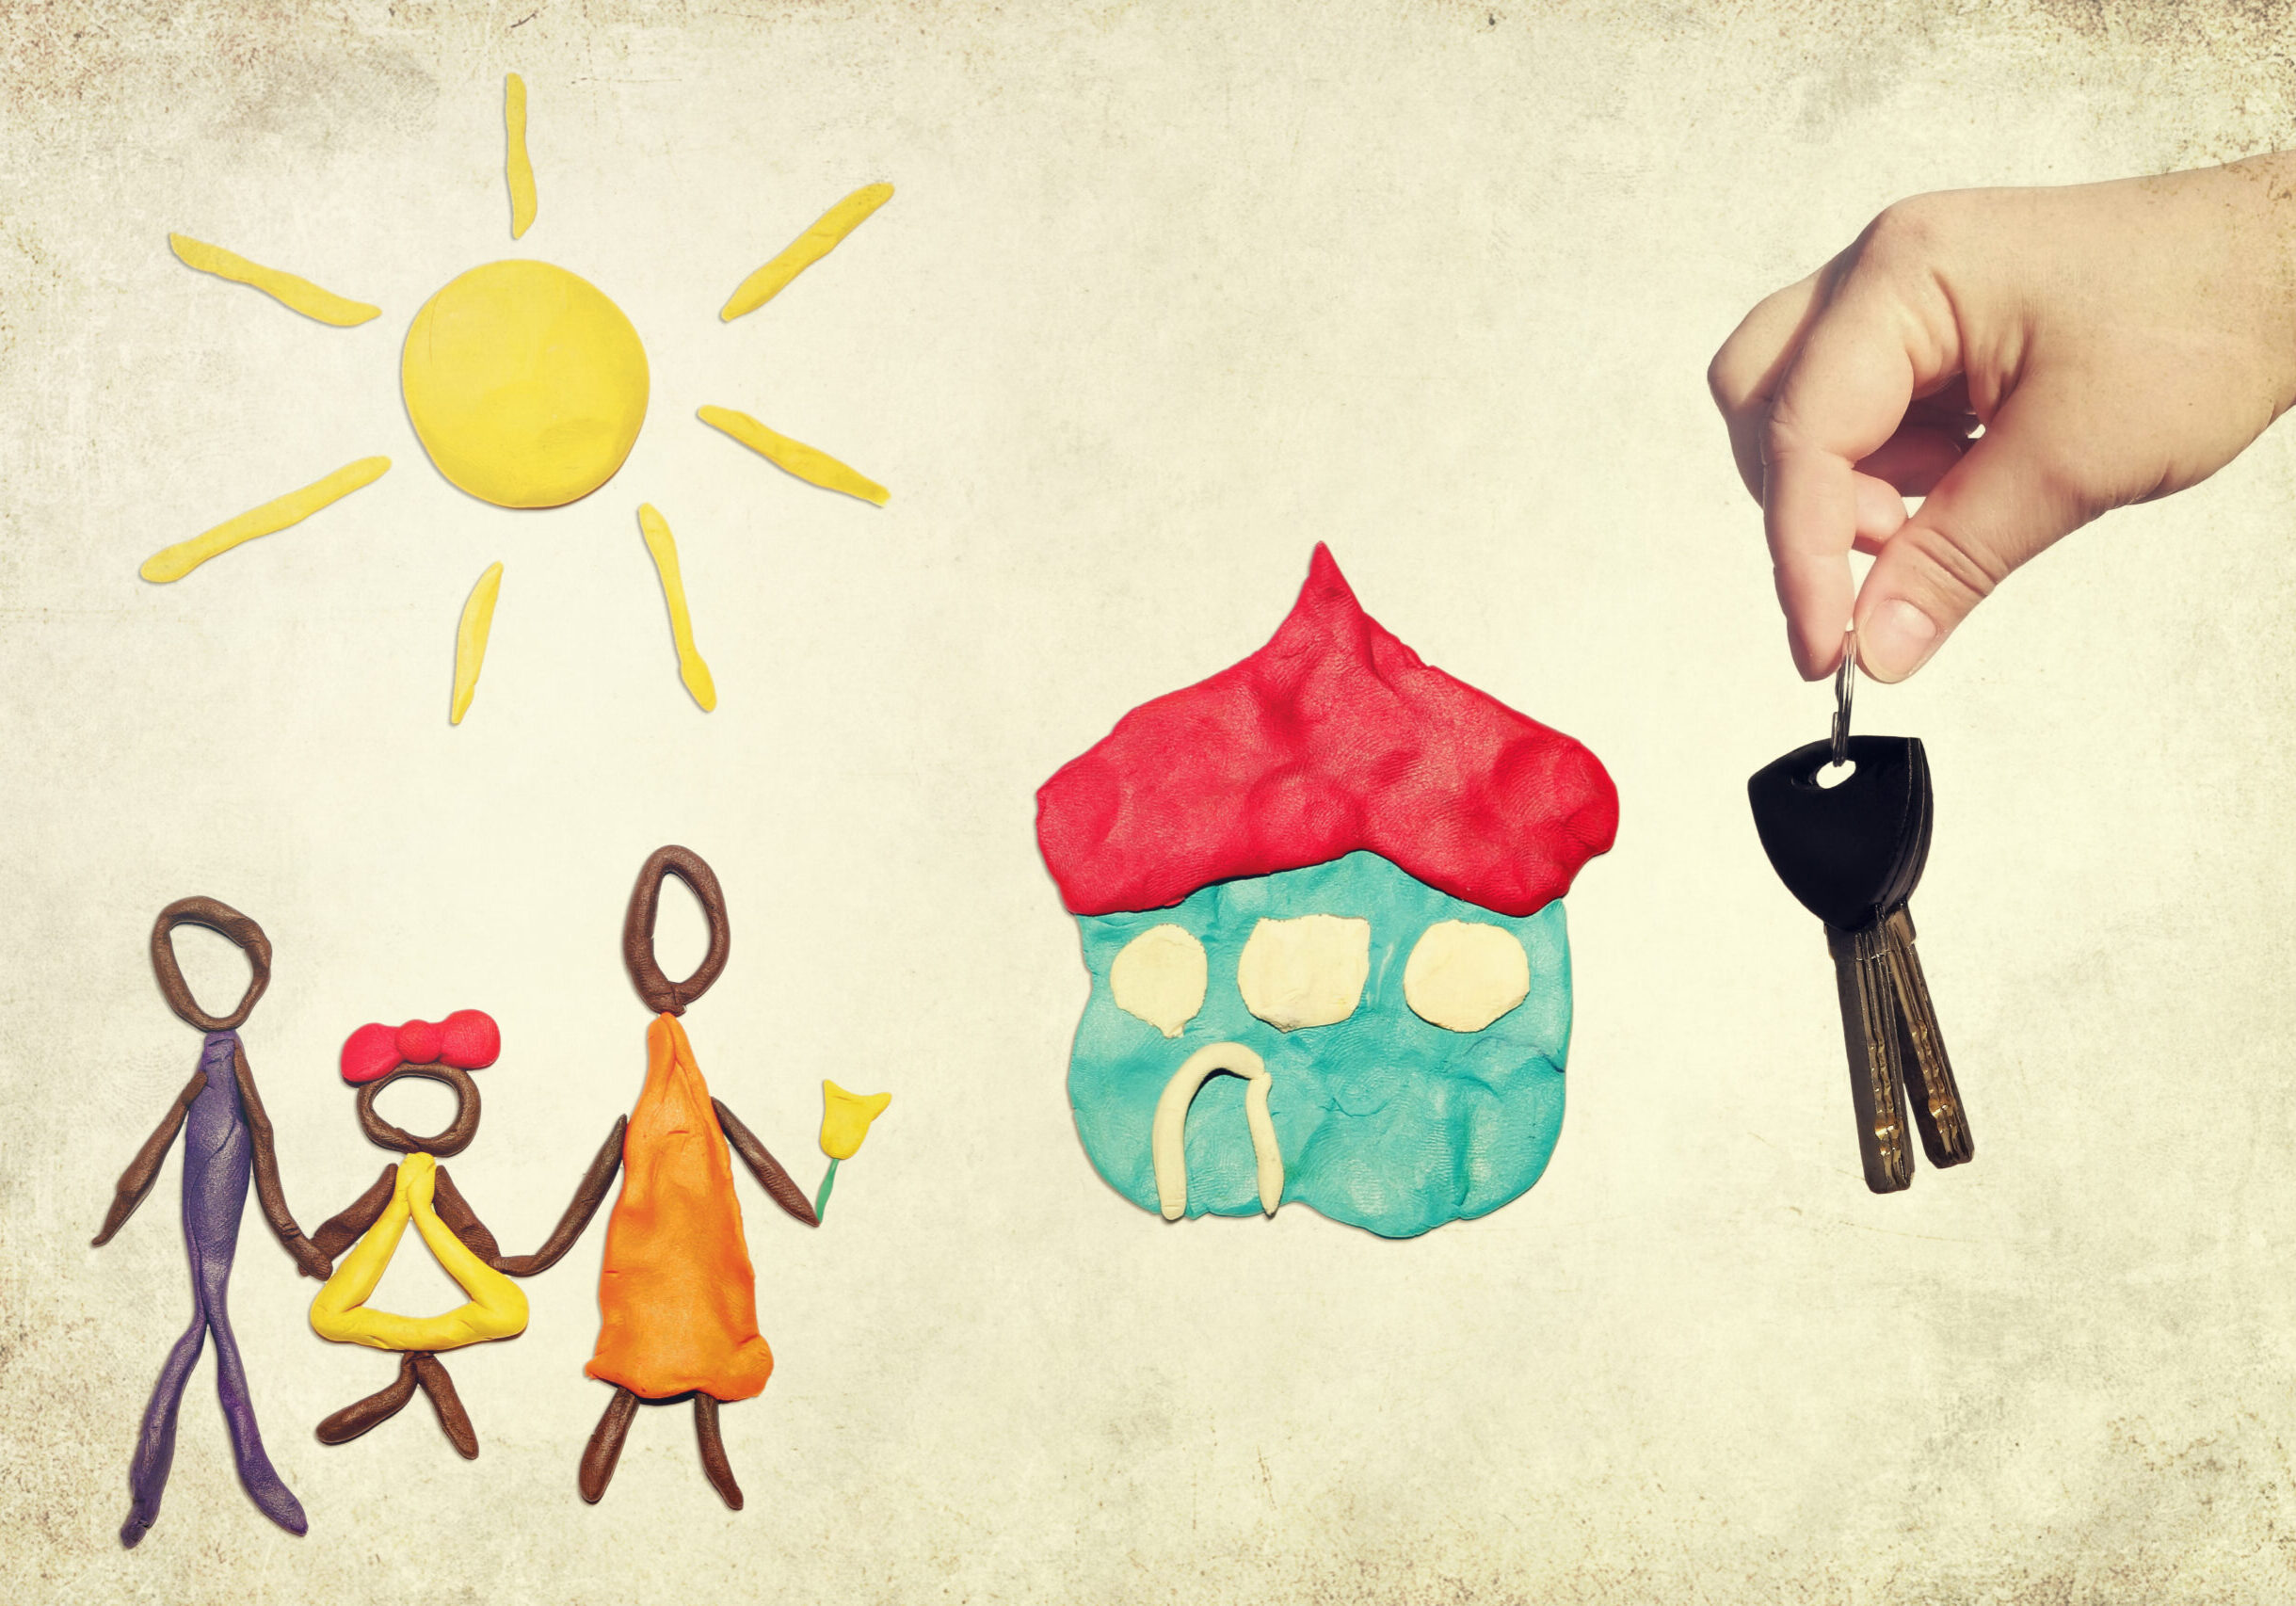 Handing,Over,The,Key,Of,A,New,House,To,Happy